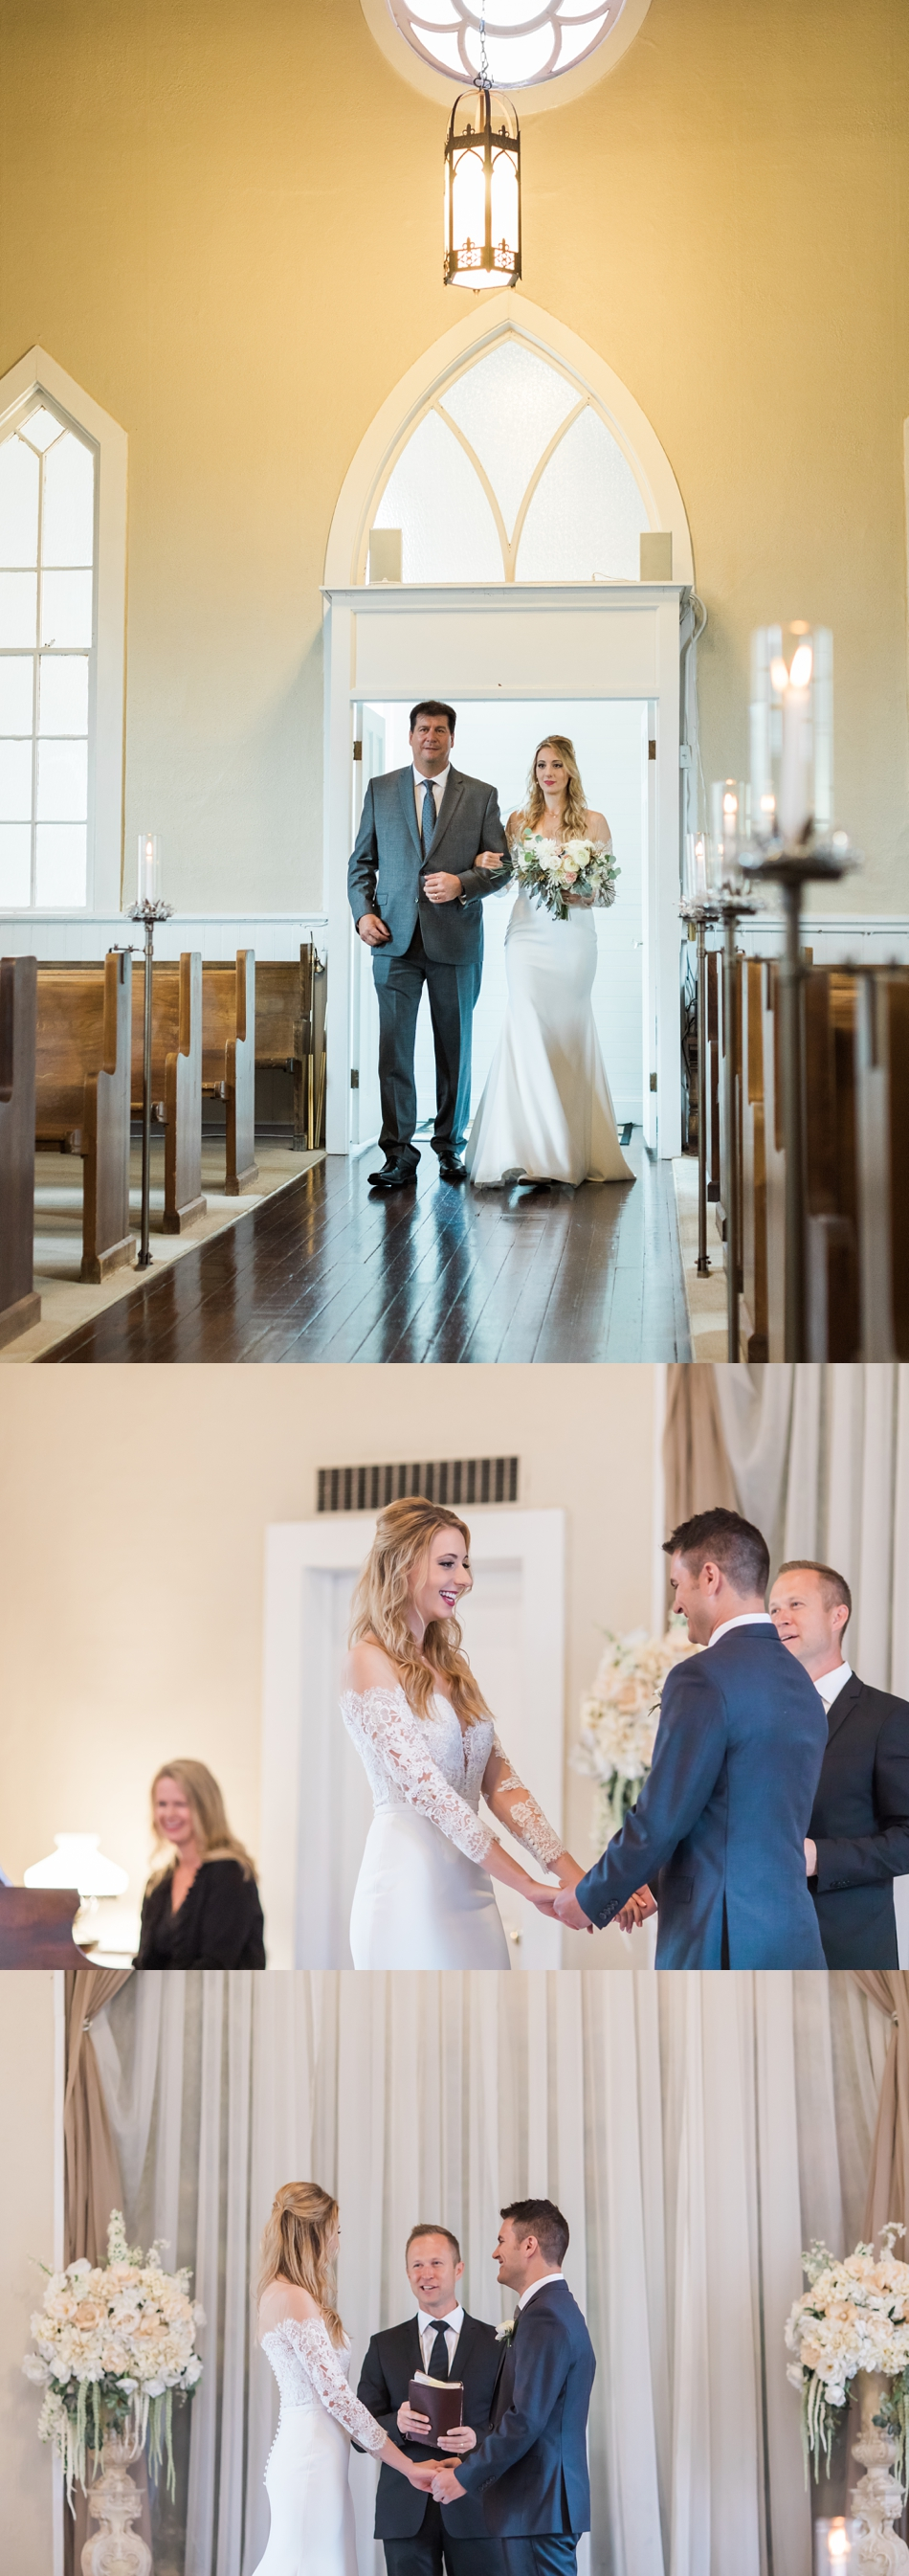 Photo of a father walking his daughter down the aisle at her intimate wedding at Belle Chapel in Snohomish, a wedding venue near Seattle. | Joanna Monger Photography | Snohomish & Seattle Photographer